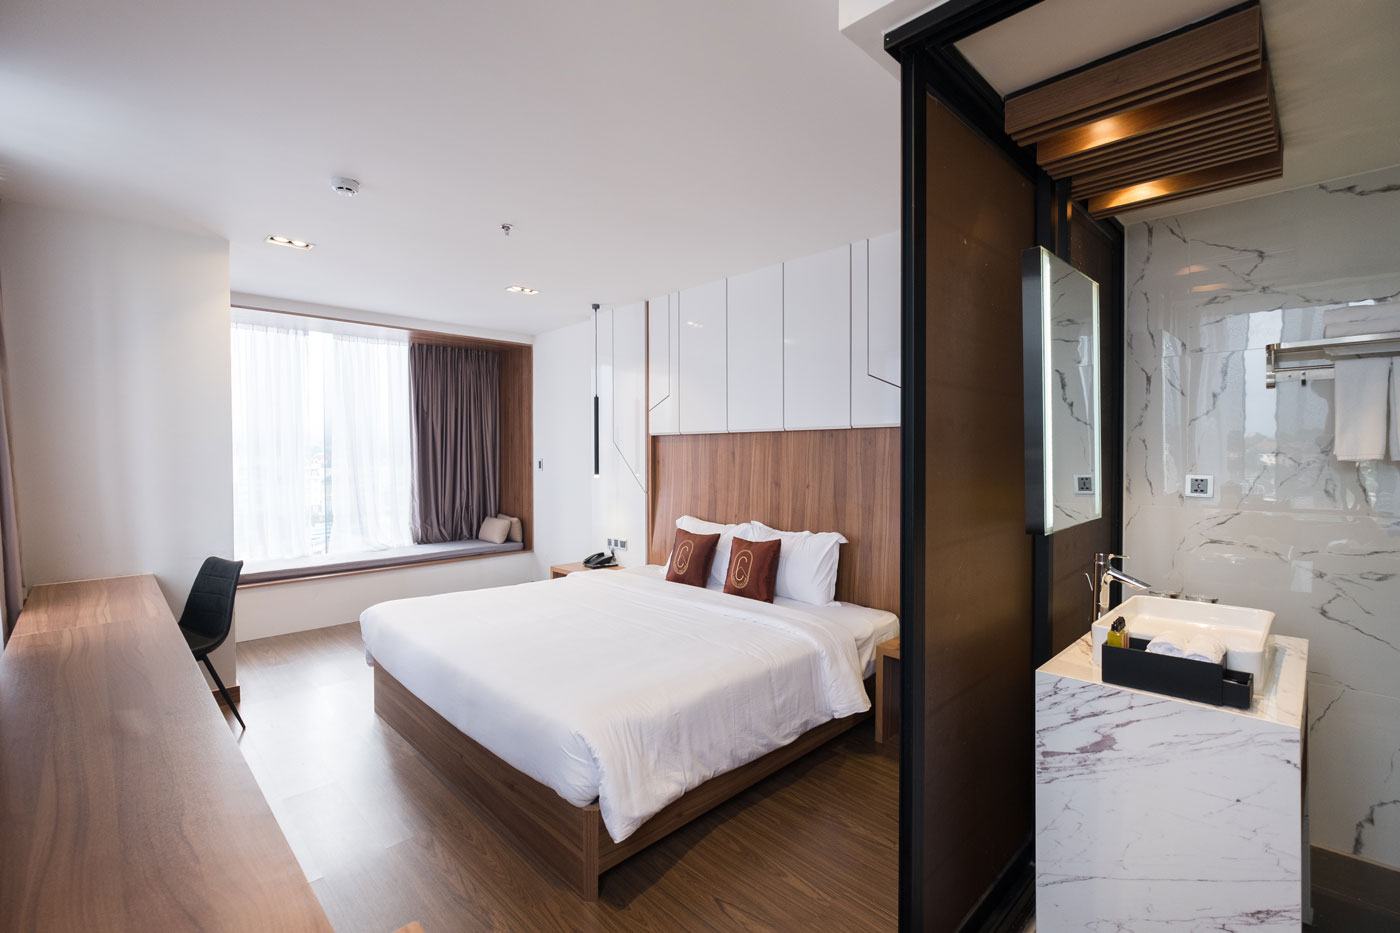 Deluxe Double Room at Hotel Colline